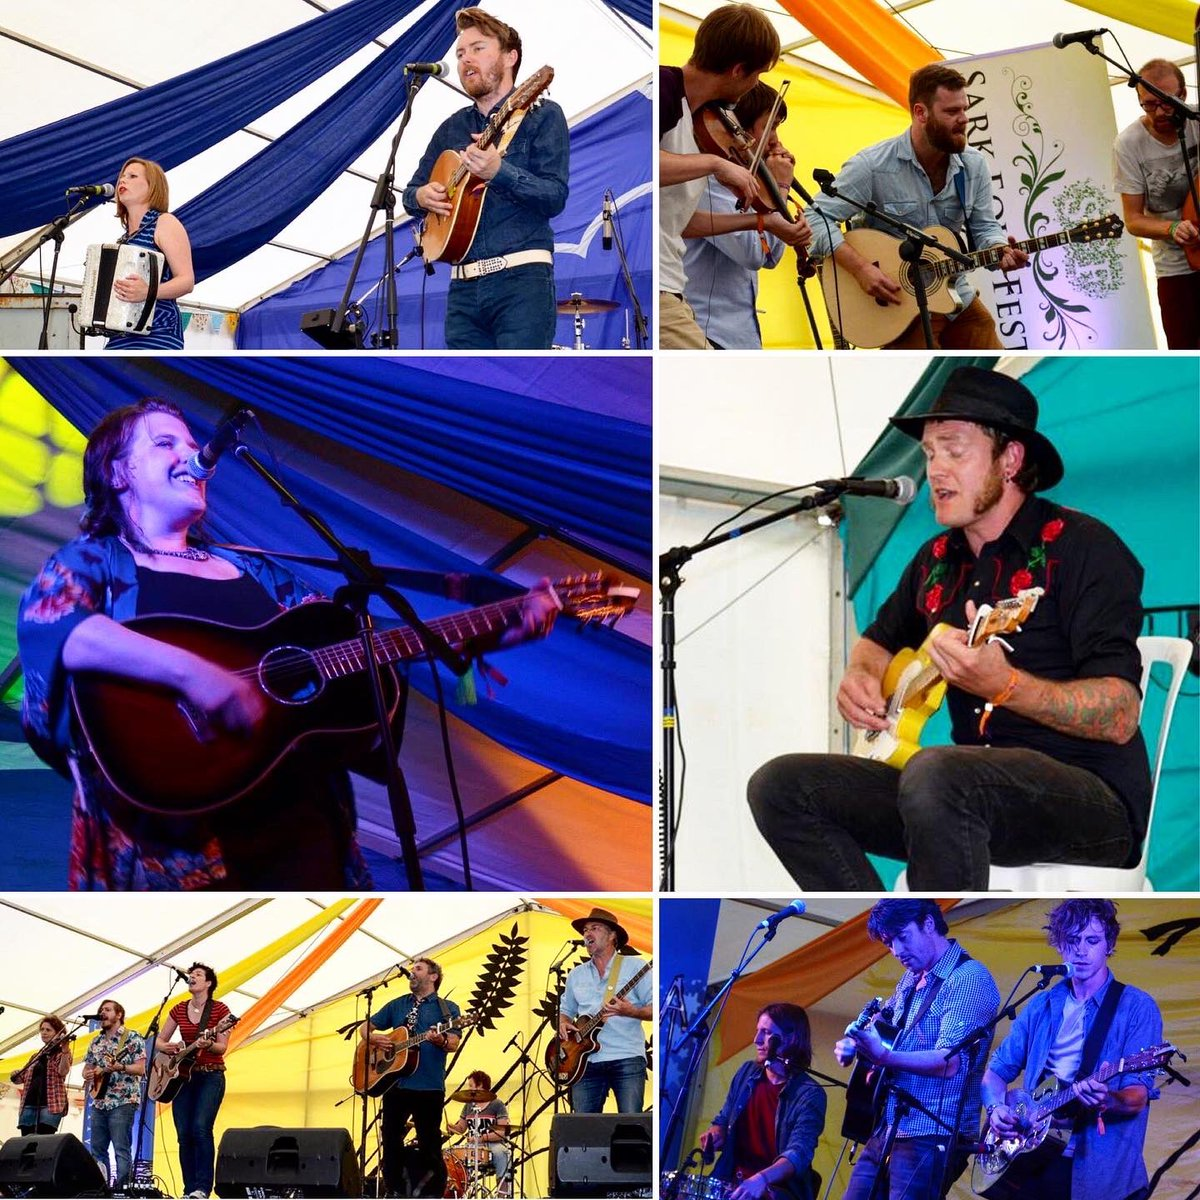 Today's #SarkFolkFestival #flashback goes to 2014 and what looked like a great year going by these pics... https://t.co/T9QfleRPGf  #music #livemusic #musicfestival #sark #channelislands @sarkfolkfest https://t.co/op97k21xnz